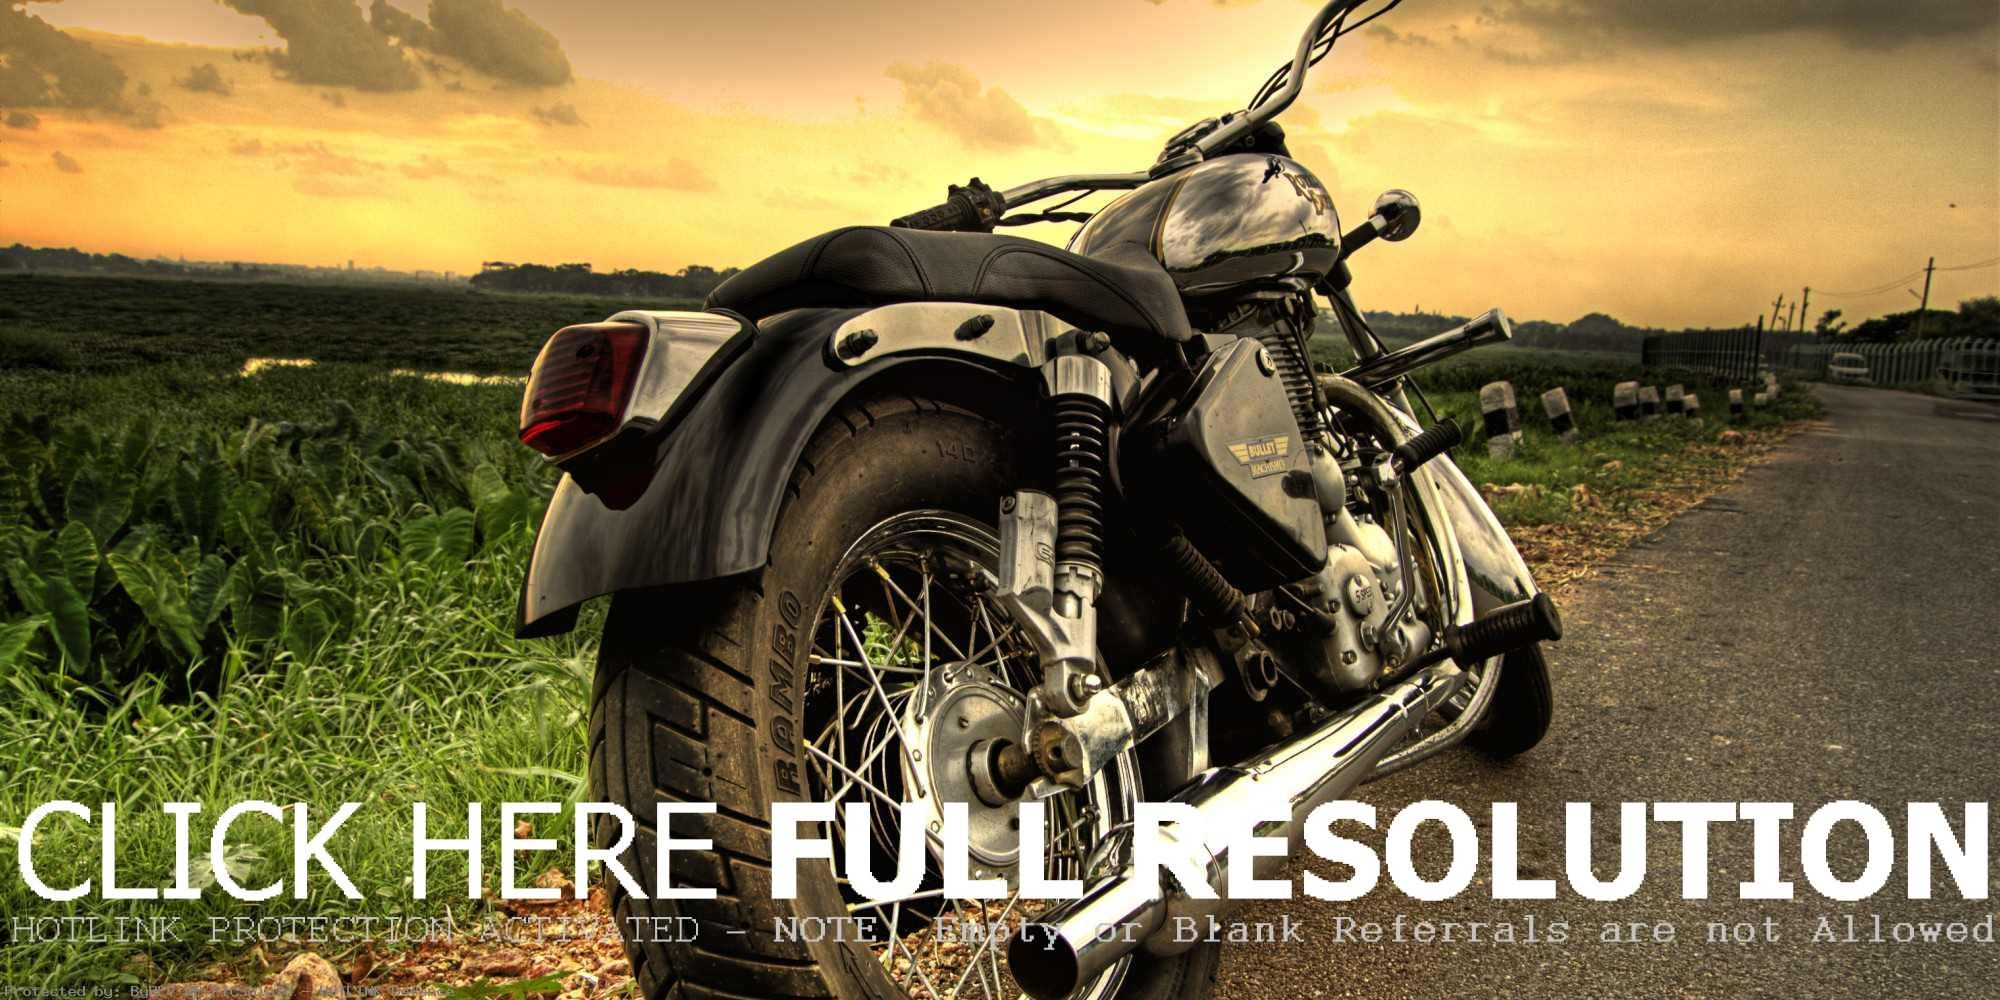 Hd wallpaper royal enfield - Bikes Wallpapers Free Download New Latest Sports Hd Desktop Images 1920 1200 Bikes Wallpapers Hd Royal Enfield